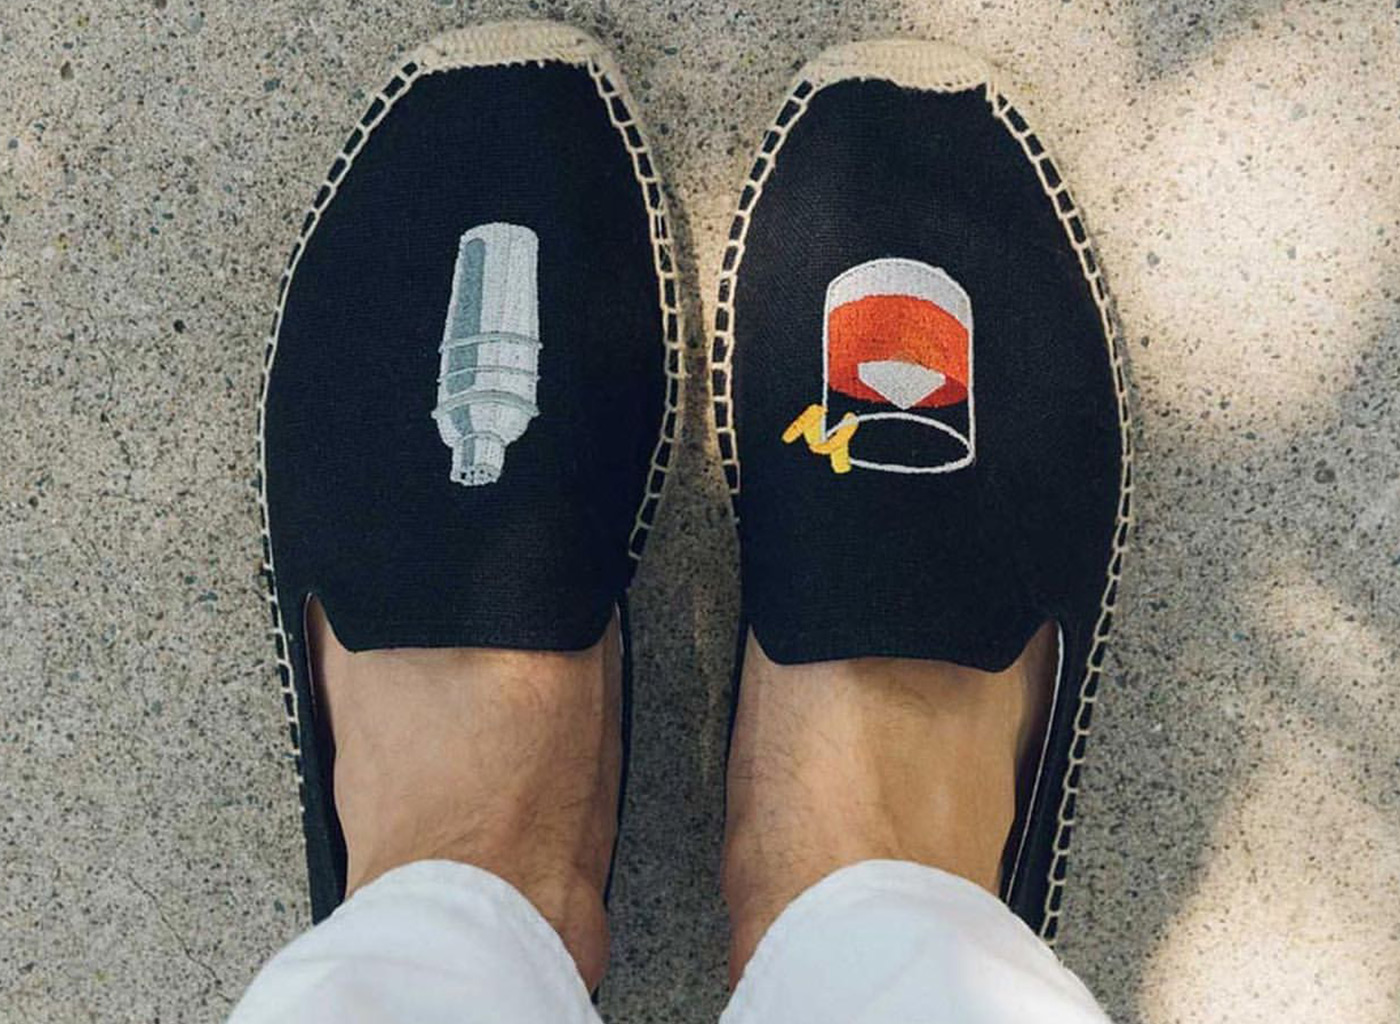 These $85 Men's Espadrilles Could Be The Coolest Shoes We've Ever Seen